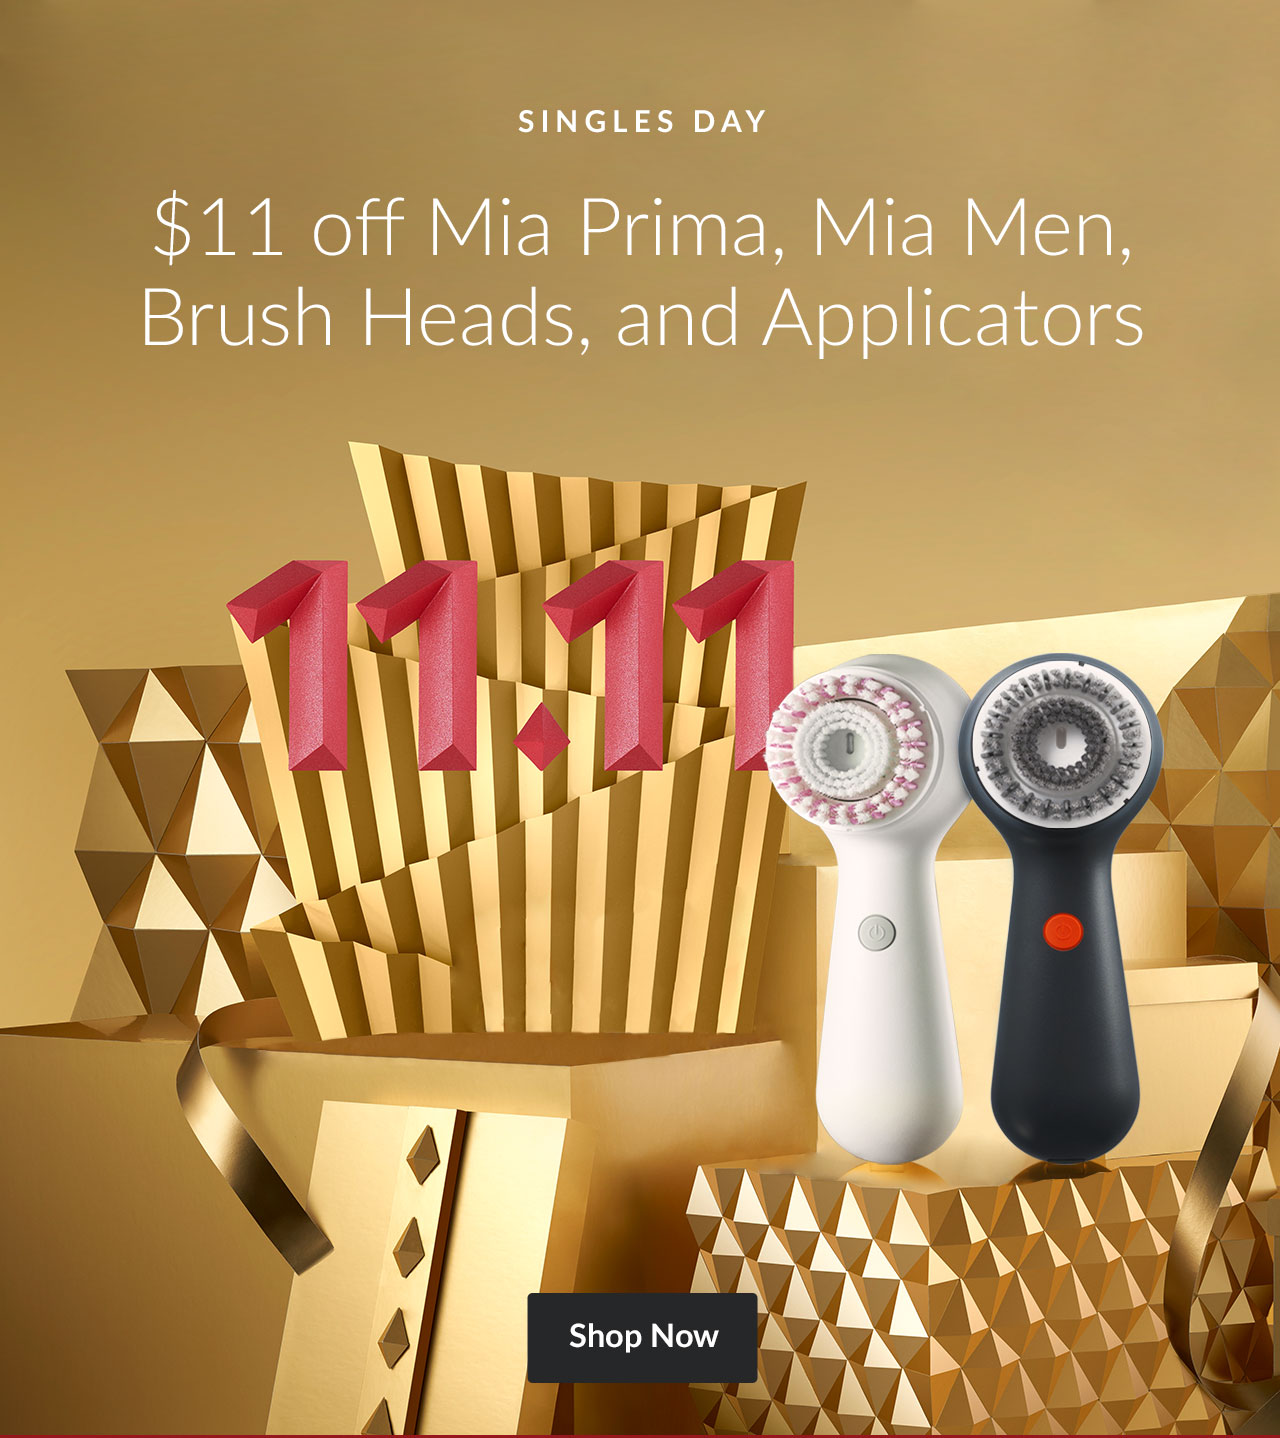 SINGLES DAY - $11 off Mia Prima, Mia Men, Brush Heads, and Applicators - Shop Now